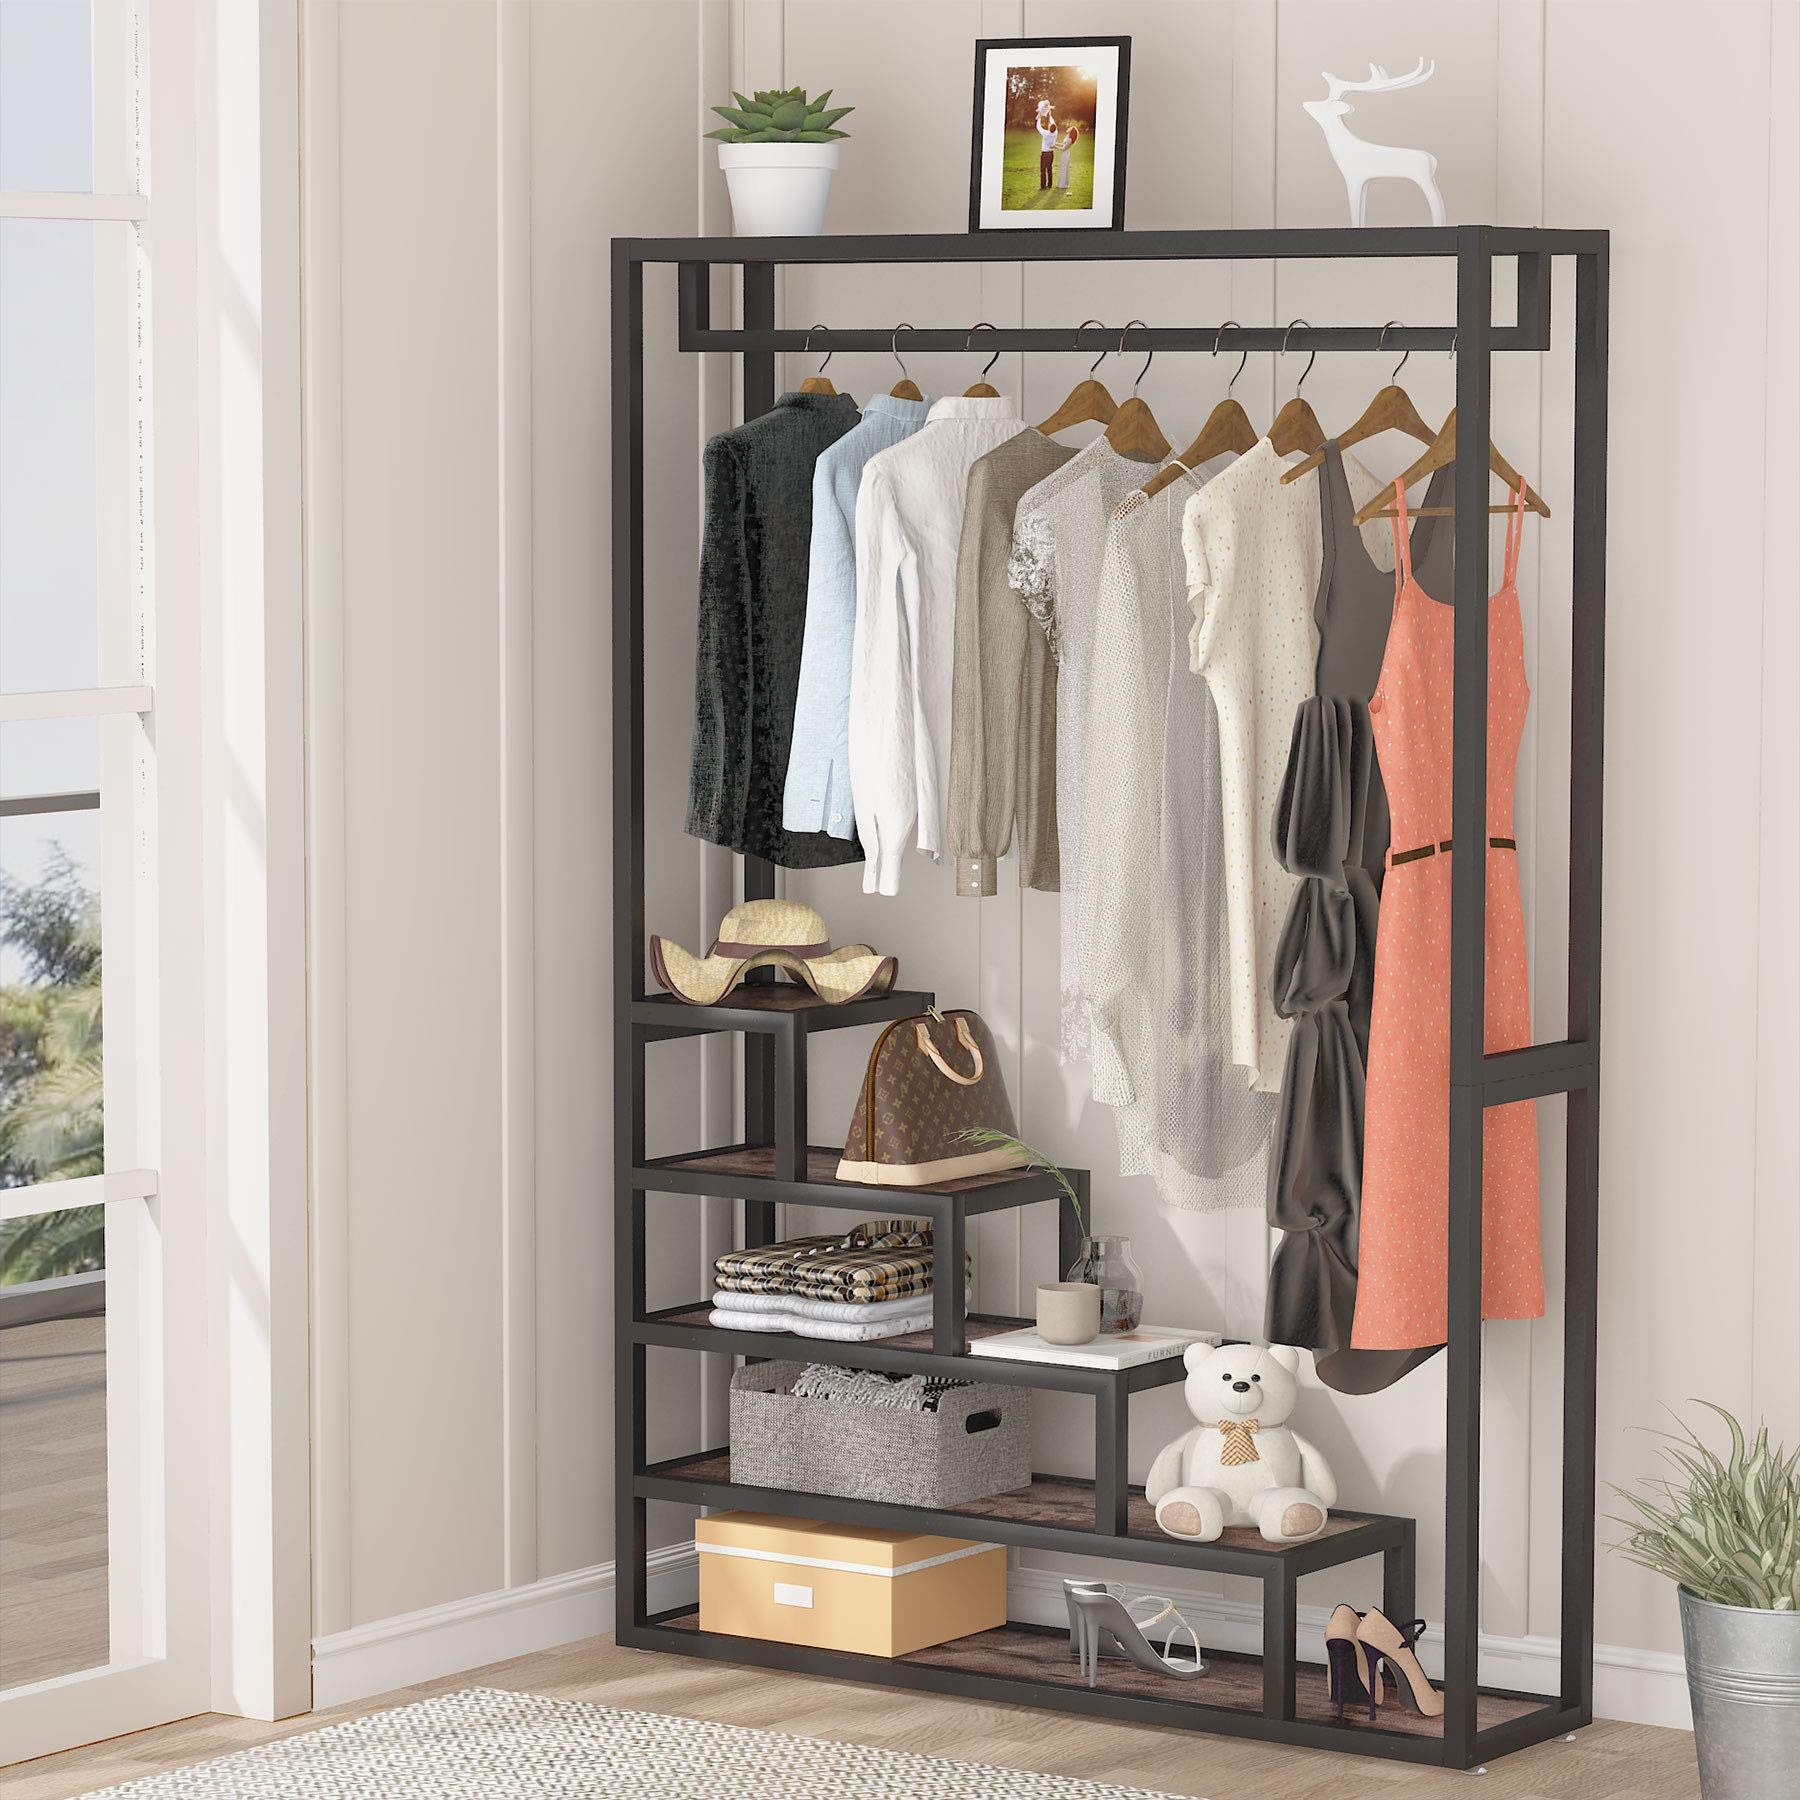 Tribesigns Garment Rack Heavy Duty Clothes Rack, Free-Standing Closet Organizer with 5 Shelves and Hanging Rod, Clothing Storage Rack For Hanging Clothes, Open Storage Organizer Clothing Shelving for Bedroom, livingroom, Rustic Brown